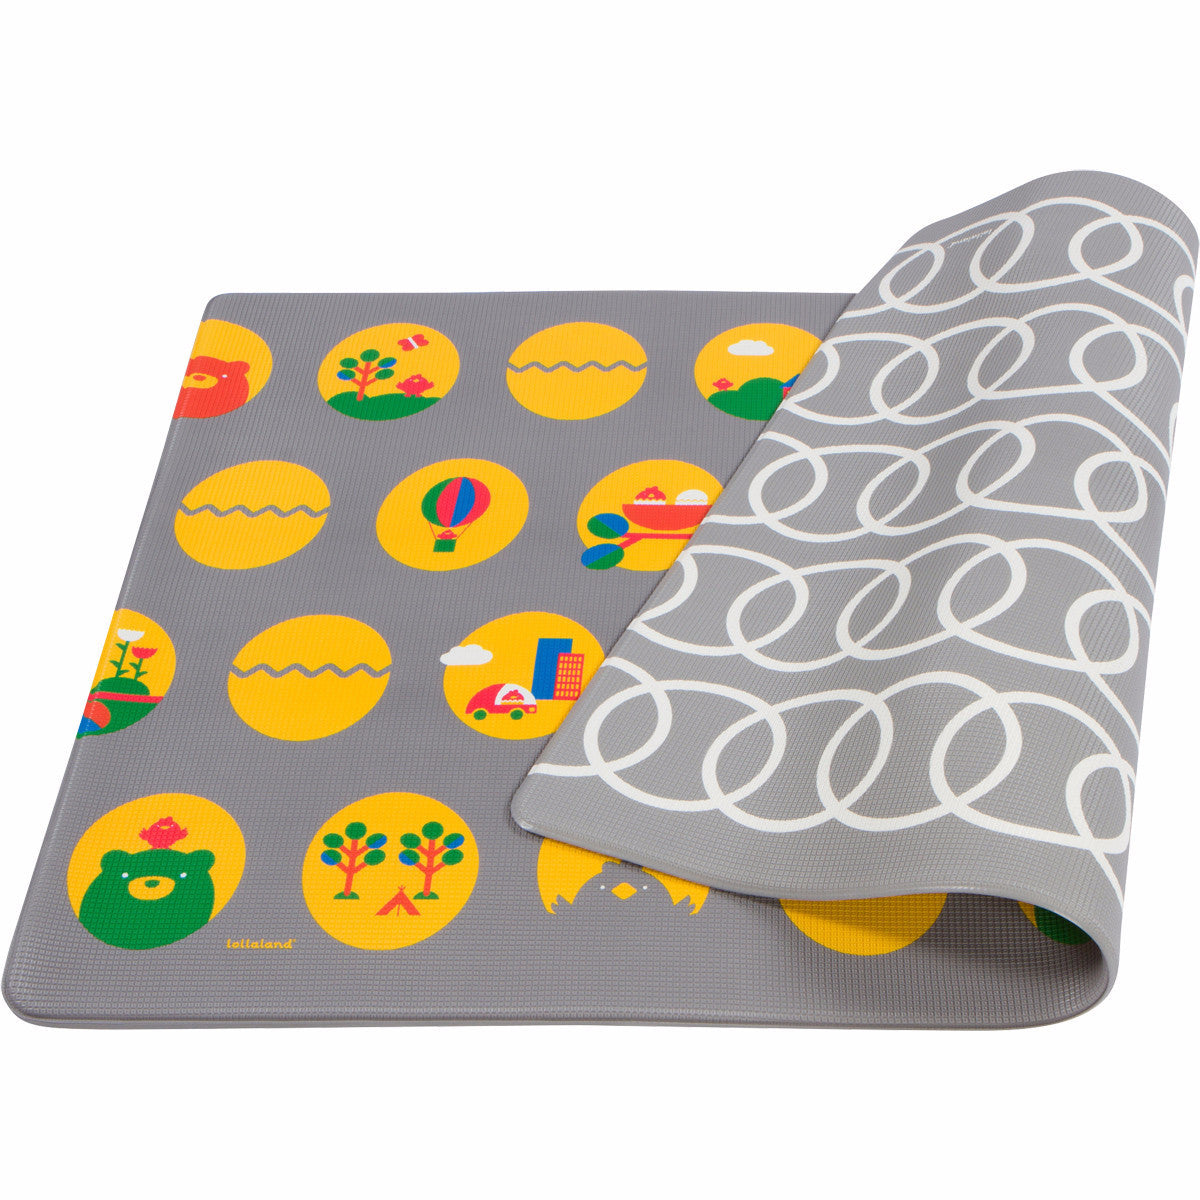 Lollaland Play Mat: Reversible, Ultra-cushioned, Easy-to-clean, Non-toxic, Safe